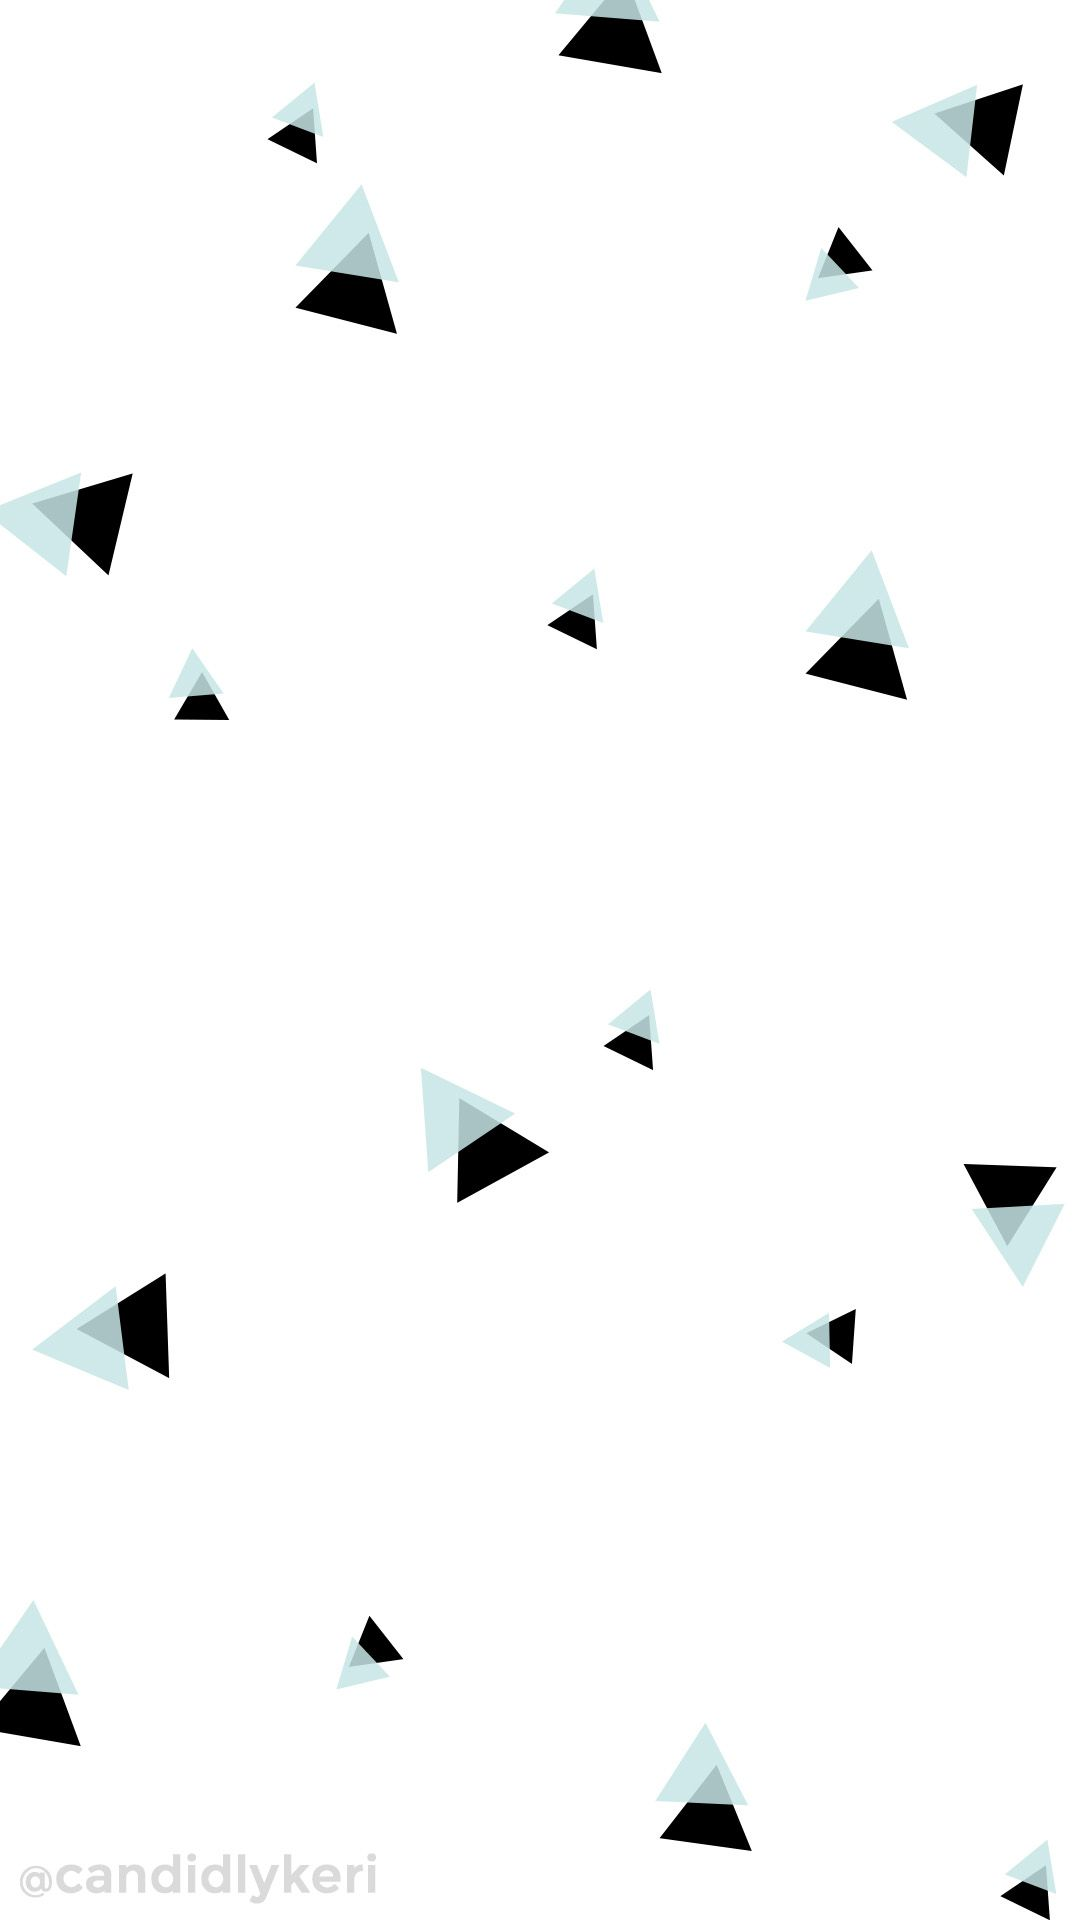 Blue And Black Triangle Geometric Fun Cute Wallpaper You Can Download For Free On The Blog For Any Device Hipster Wallpaper Cute Wallpapers Hippie Wallpaper